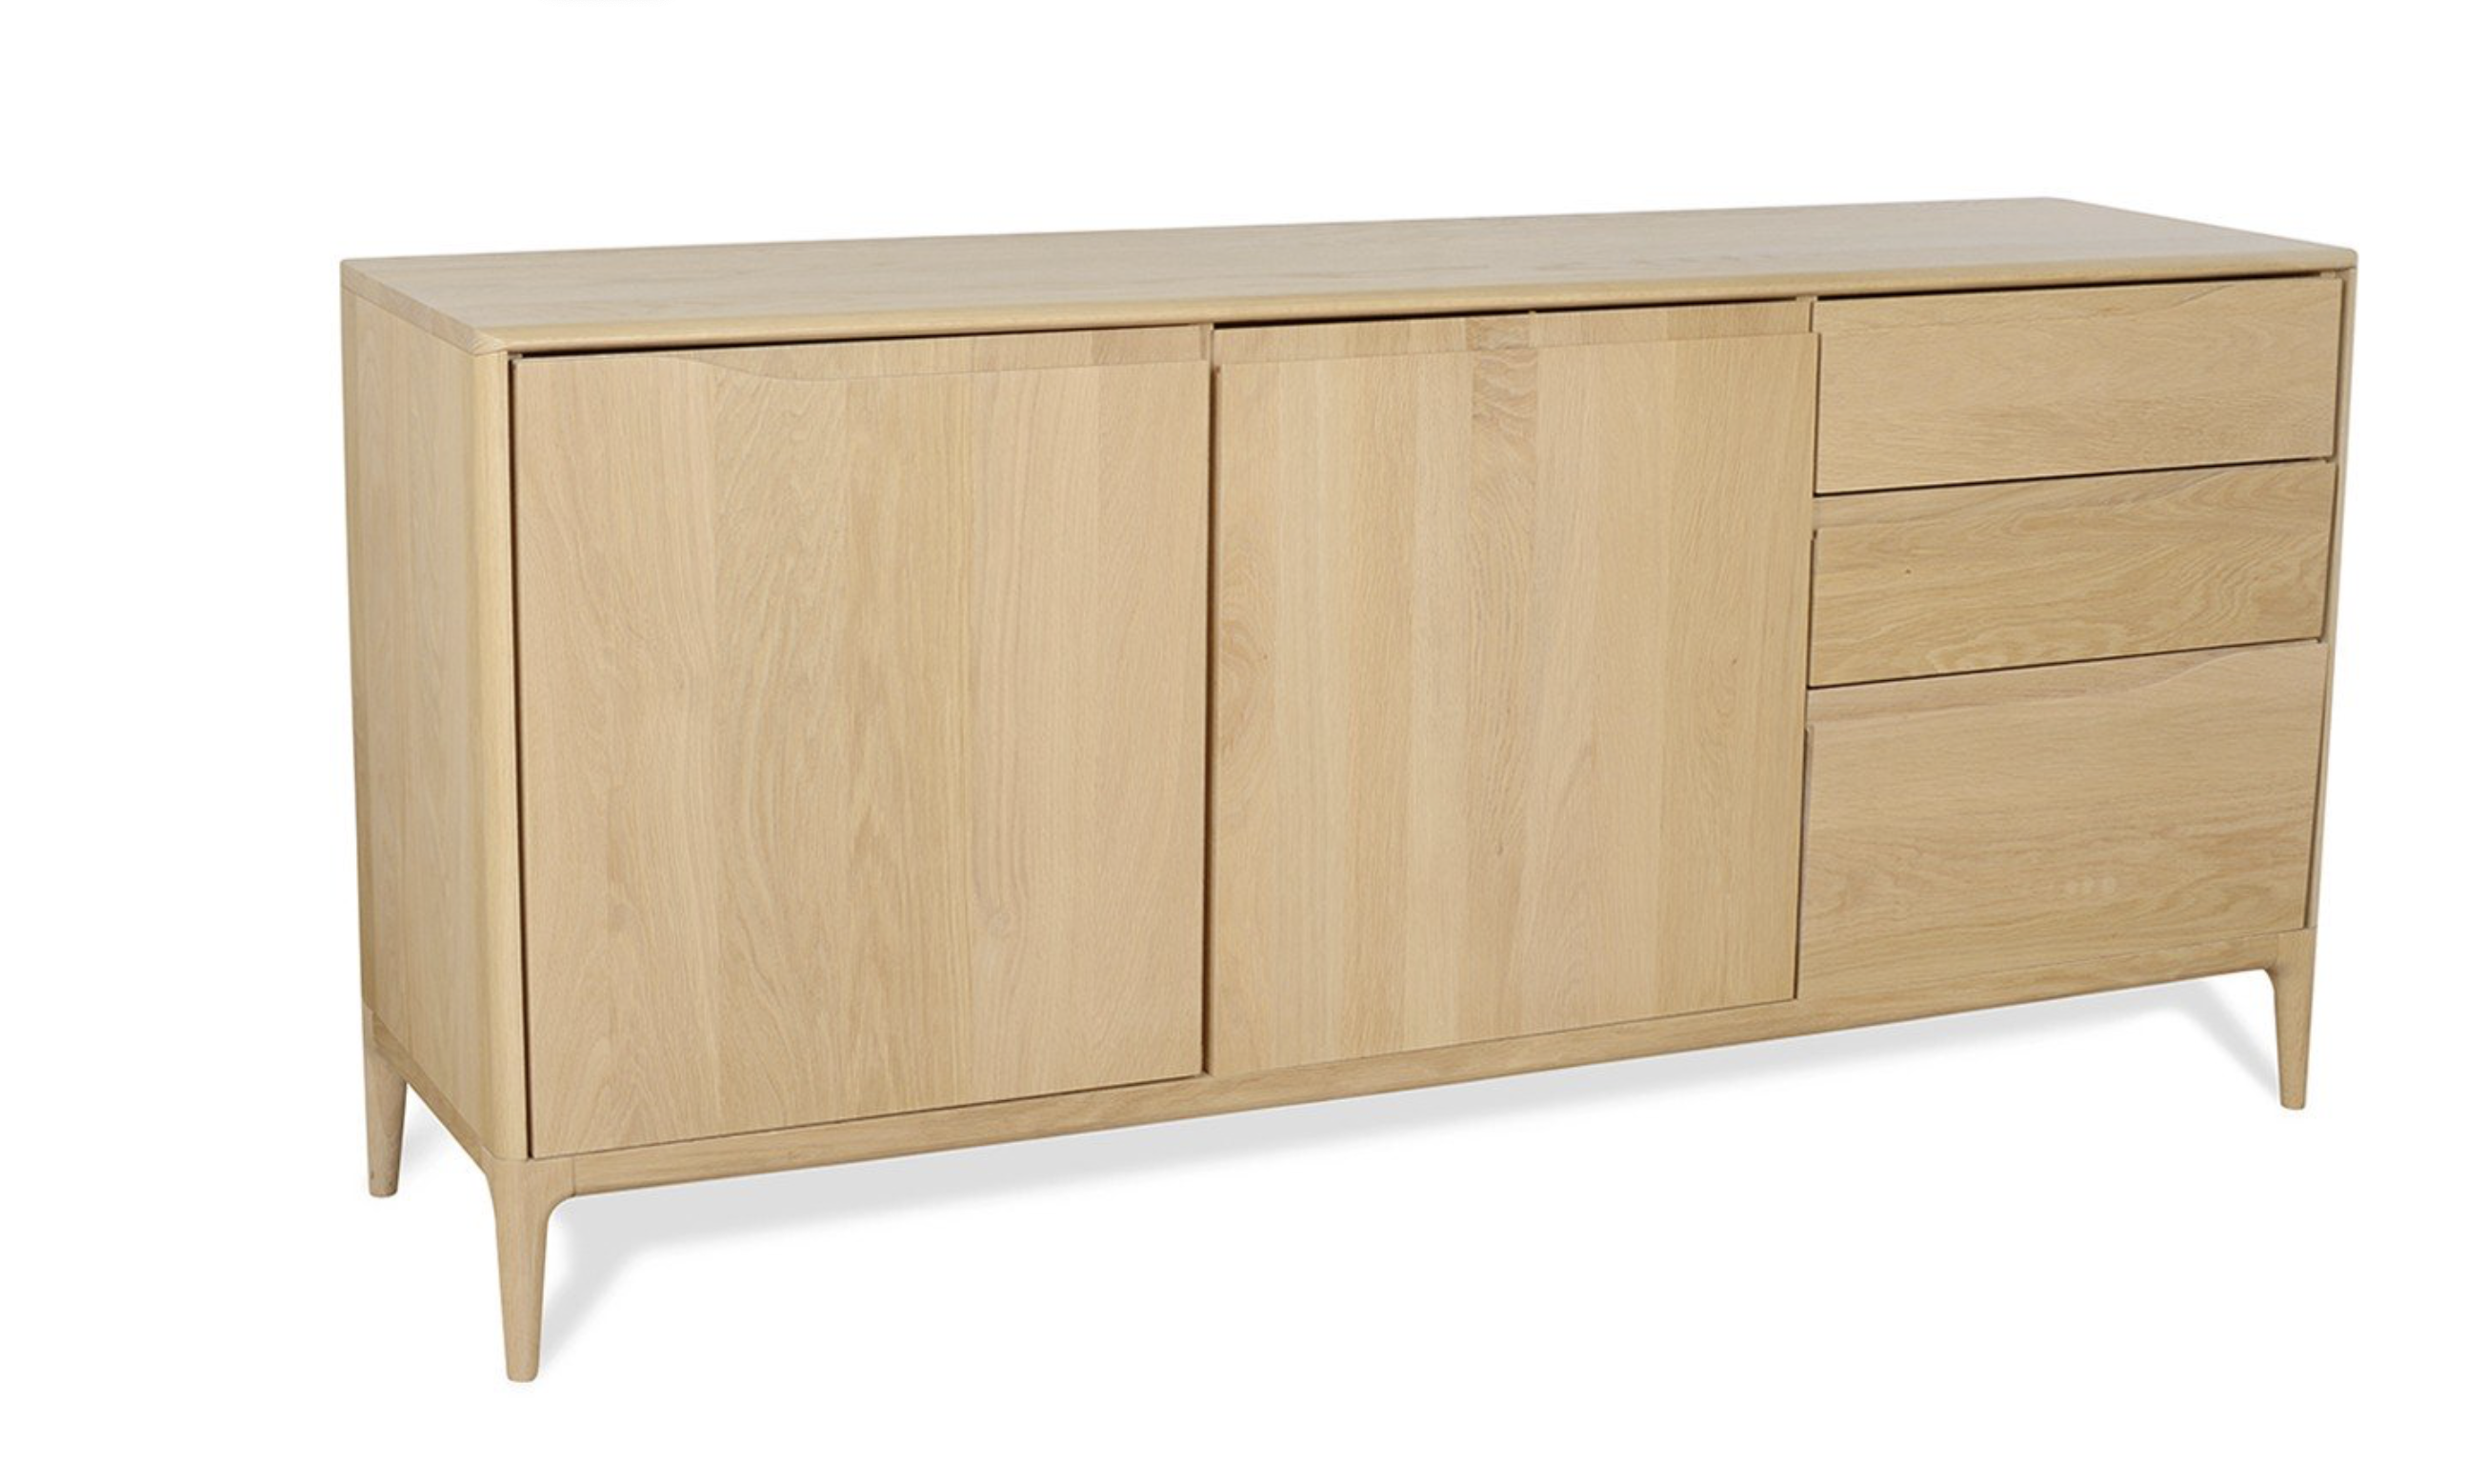 A lovely wooden sideboard from Ercol at Heal's